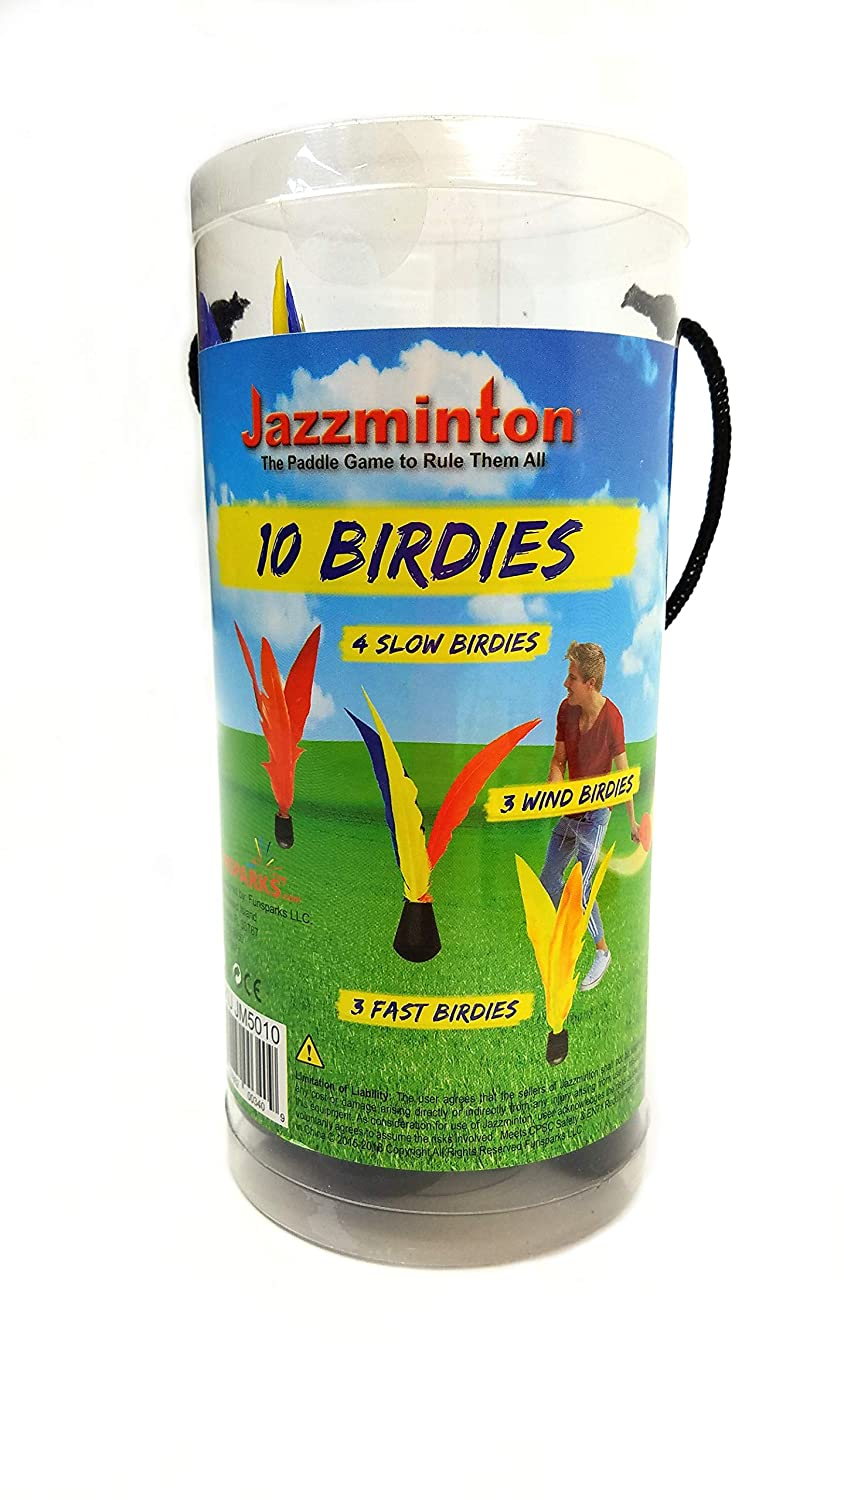 Amazon.com : Funsparks Jazzminton 11 Replacement Birdies or Shuttlecocks for Indoor and Outdoor Game - Played at Parks, Beach, Lawn, Yard, or Tailgating ...